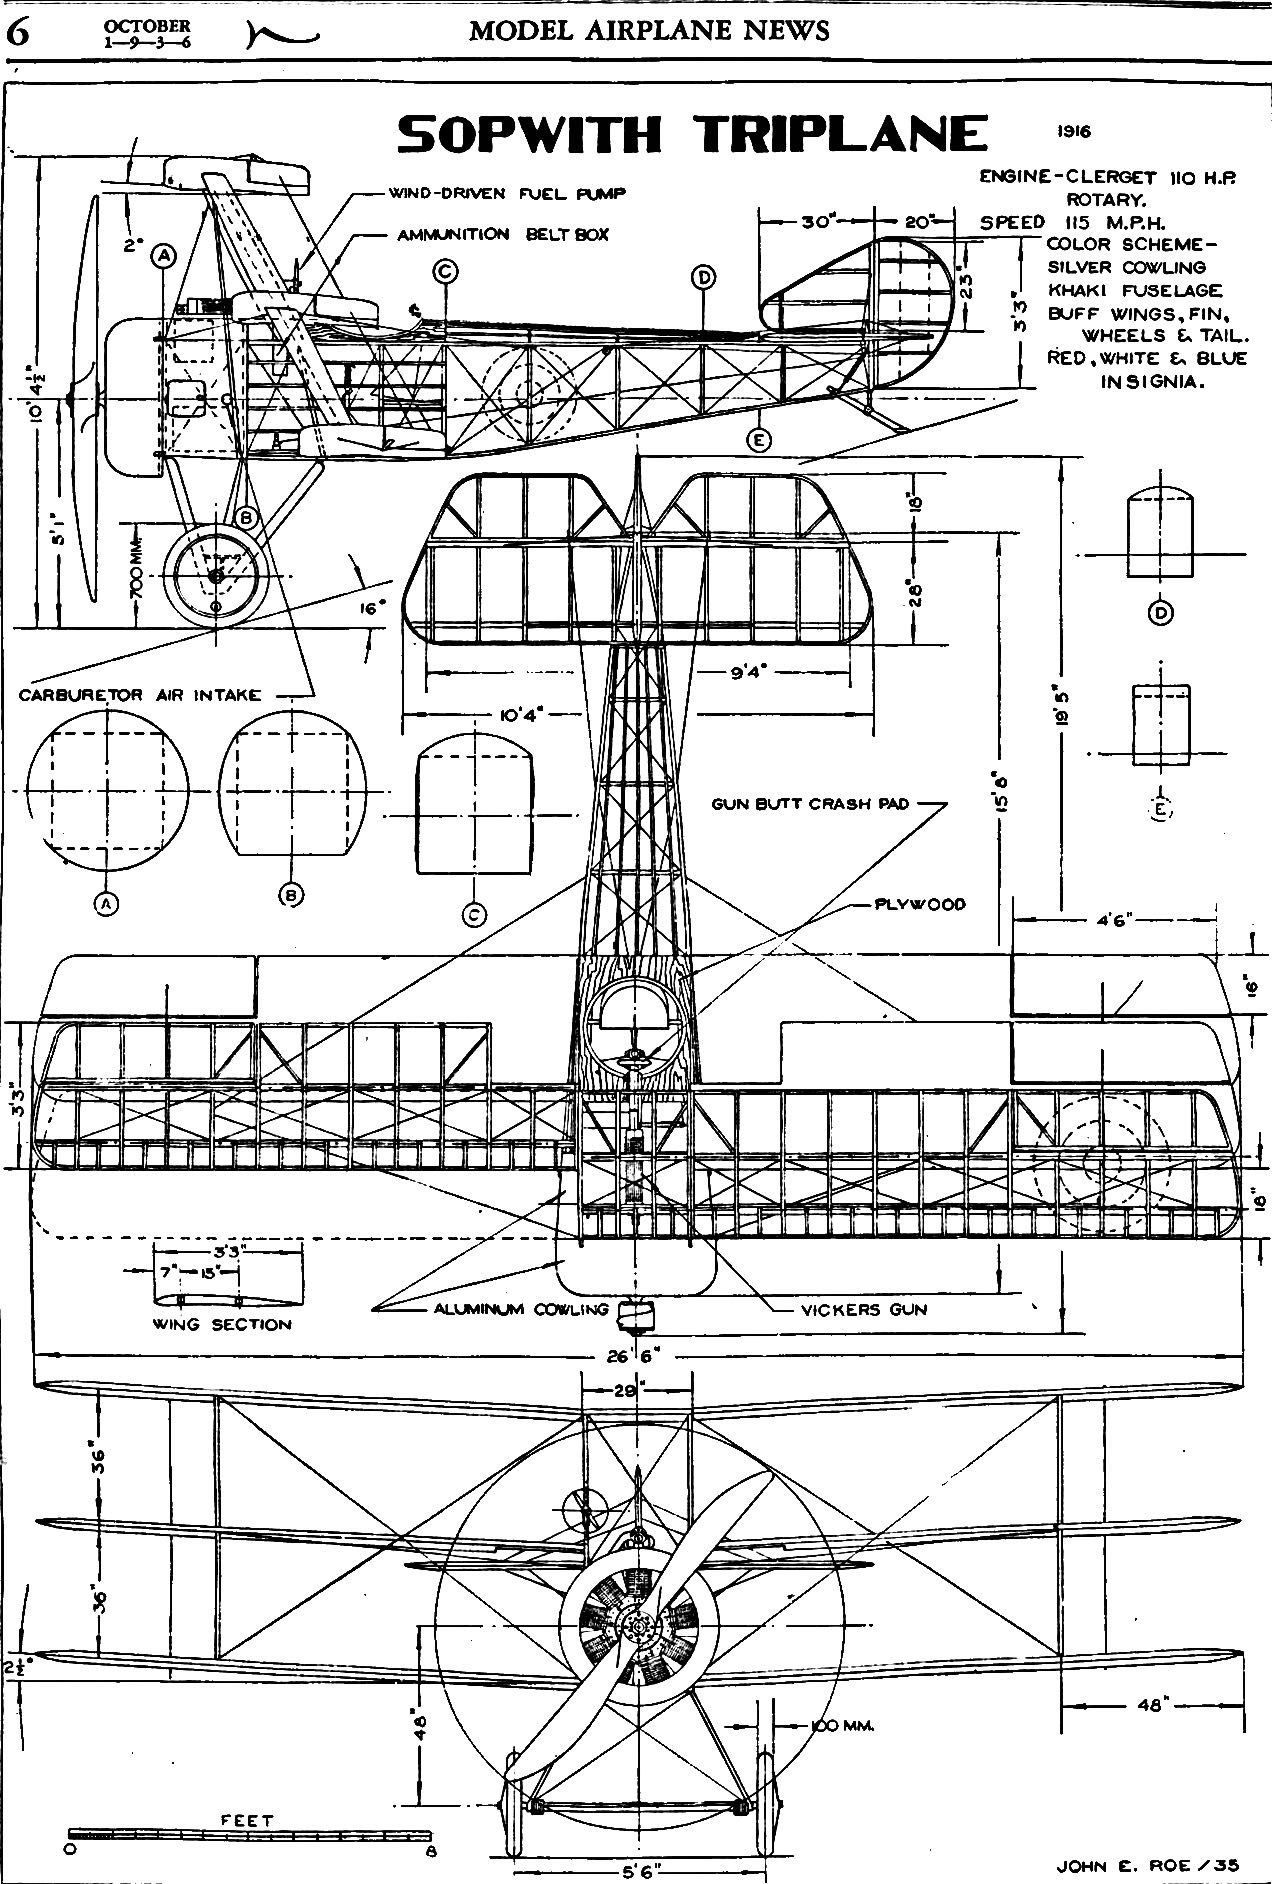 Planes Engineering Schematic Free Vehicle Wiring Diagrams Wow Schematics Pin By Hjuy Hgroo On 2 Pinterest Aircraft And Airplanes Rh Com Goblin Recipes Mounts Recipe